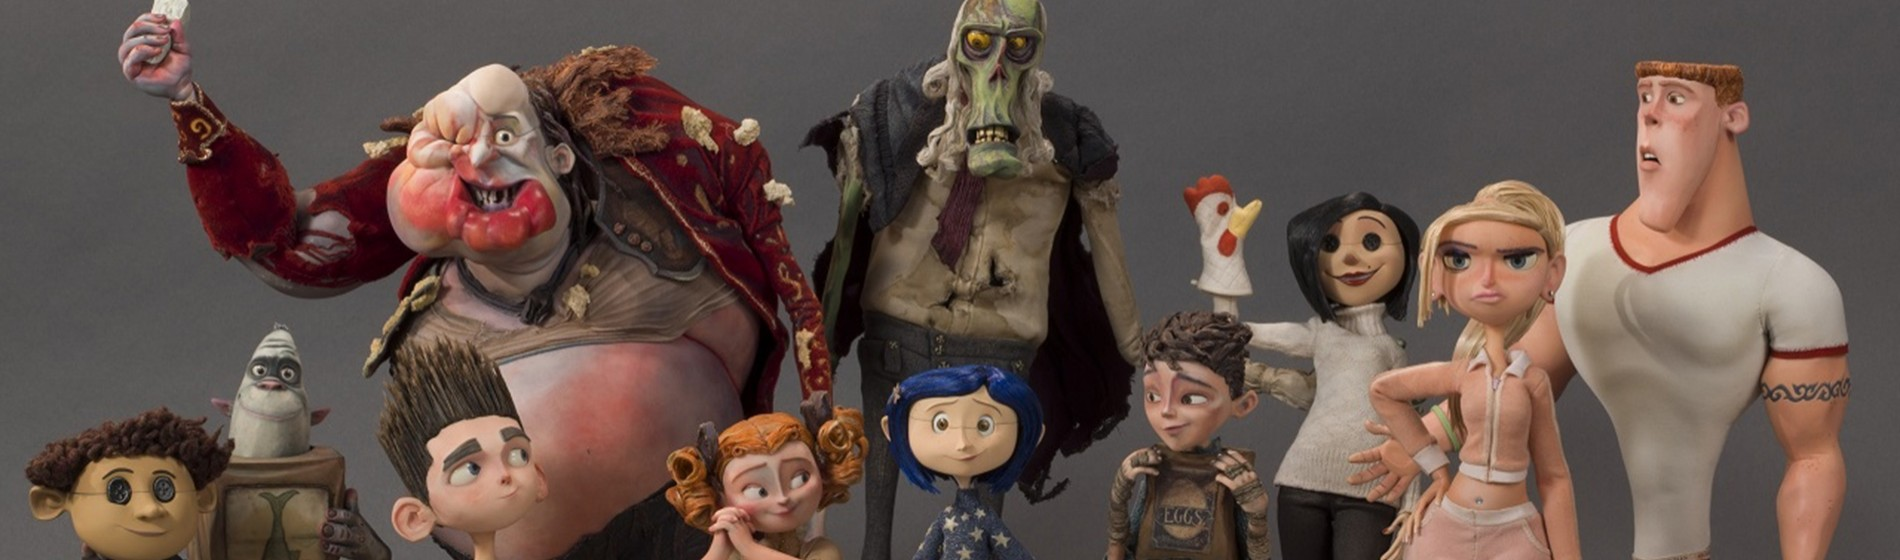 The 10 Most Amazing Things About Laika, the Studio Behind 'The ...